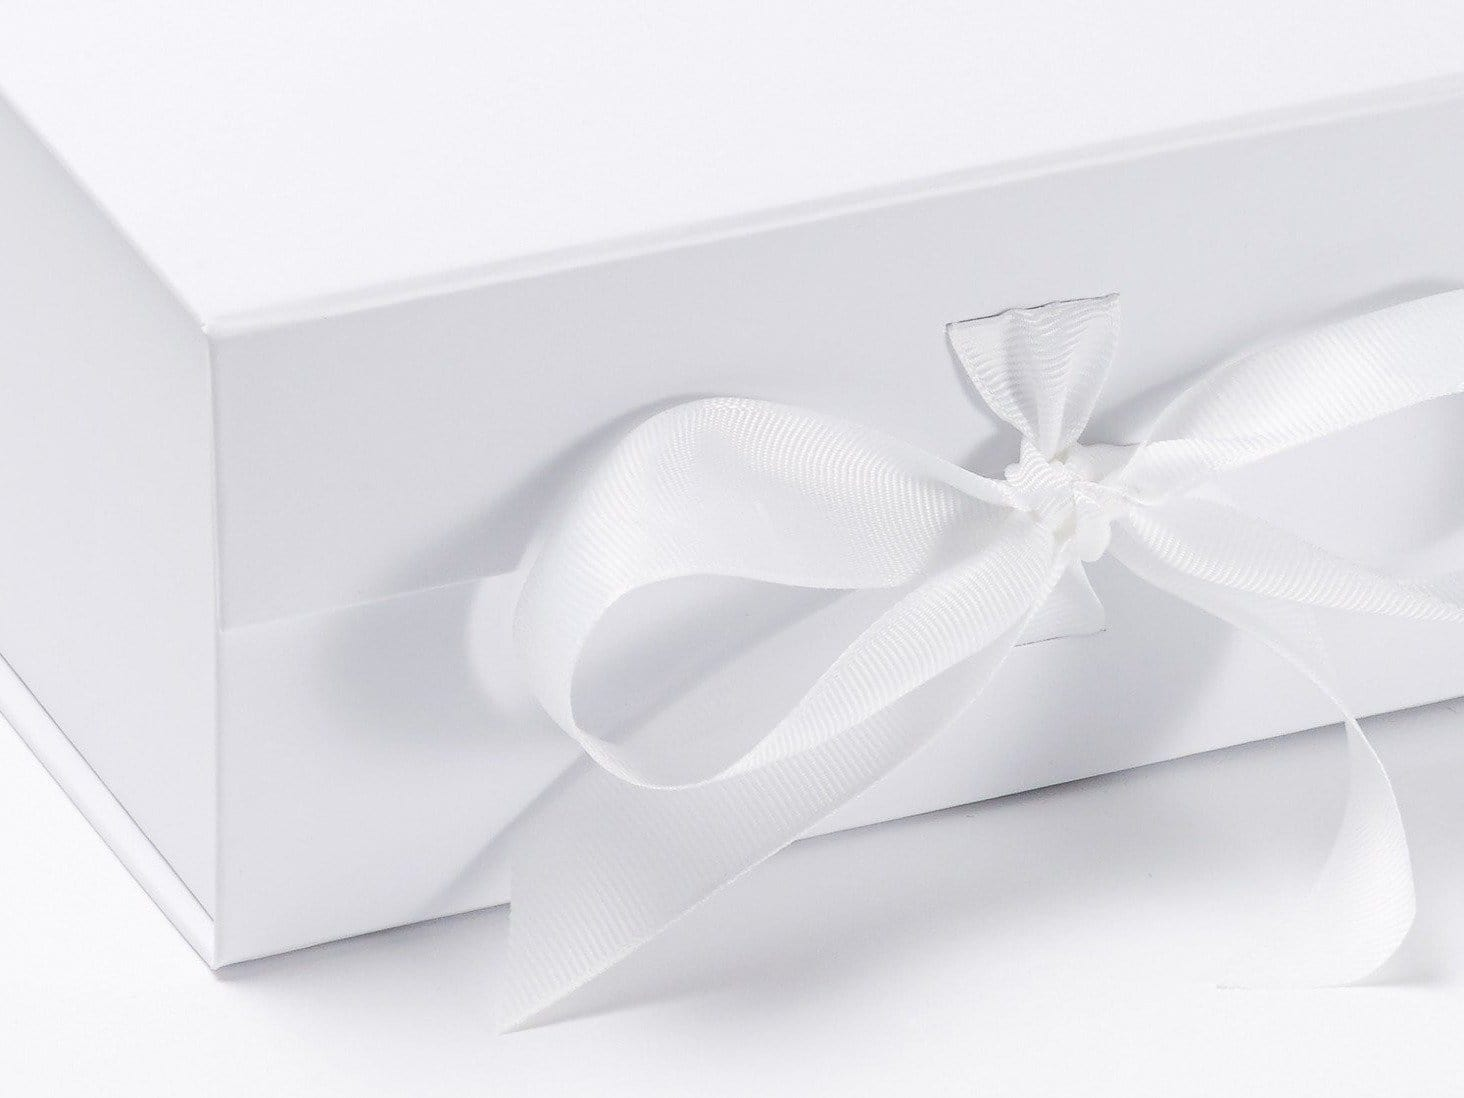 White A4 Deep Gift Boxes With Grosgrain Ribbon Ties From